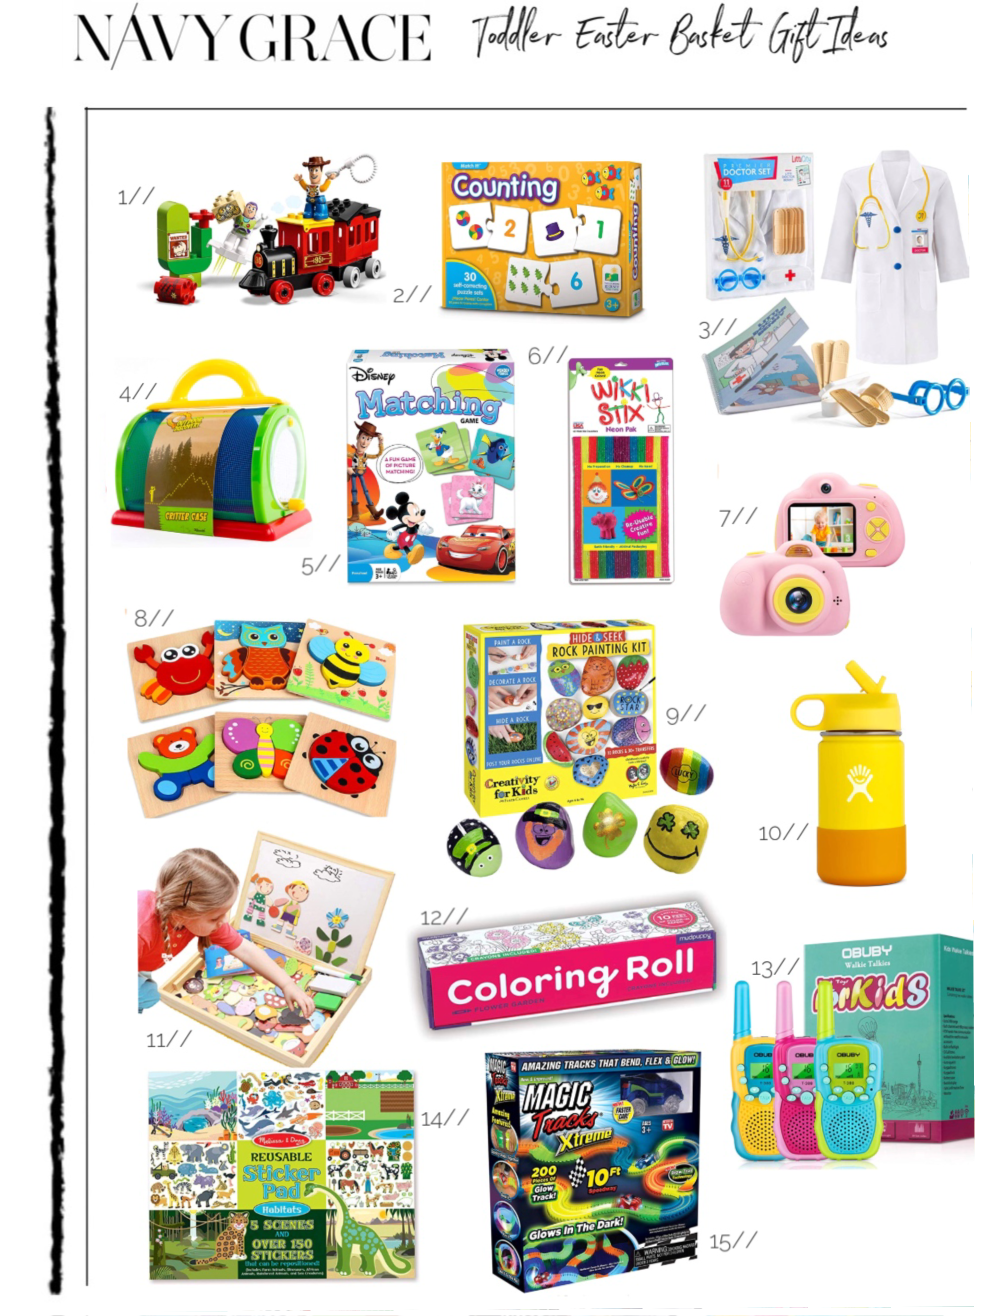 TODDLER EASTER BASKET GIFT IDEAS featured by top San Diego lifestyle blog, Navy Grace | Easter Basket Ideas for Toddlers by popular San Diego lifestyle blog, Navy Grace: collage image of a Amazon LEGO DUPLO Disney Pixar Toy Story Train, Amazon The Learning Journey: Match It! - Counting - Self-Correcting Number & Learn to Count Puzzle, Amazon Litti City Doctor Kit for Kids, Amazon Backyard Exploration Critter Case, Amazon Wonder Forge Disney Classic Characters Matching Game, Amazon WikkiStix, Amazon Leader Pro Kids Camera, Amazon Dreampark Wooden Jigsaw Puzzles, Amazon Creativity for Kids Hide & Seek Rock Painting Kit, Amazon Hydro Flask 12 oz Kids Water Bottle, Amazon ODDODDY Educational Wooden Toys, Amazon Mudpuppy Under The Sea Coloring Roll, Amazon Obuby Walkie Talkies for Kids, Amazon Melissa & Doug Reusable Sticker Pad, and Amazon Ontel Magic Tracks Xtreme.